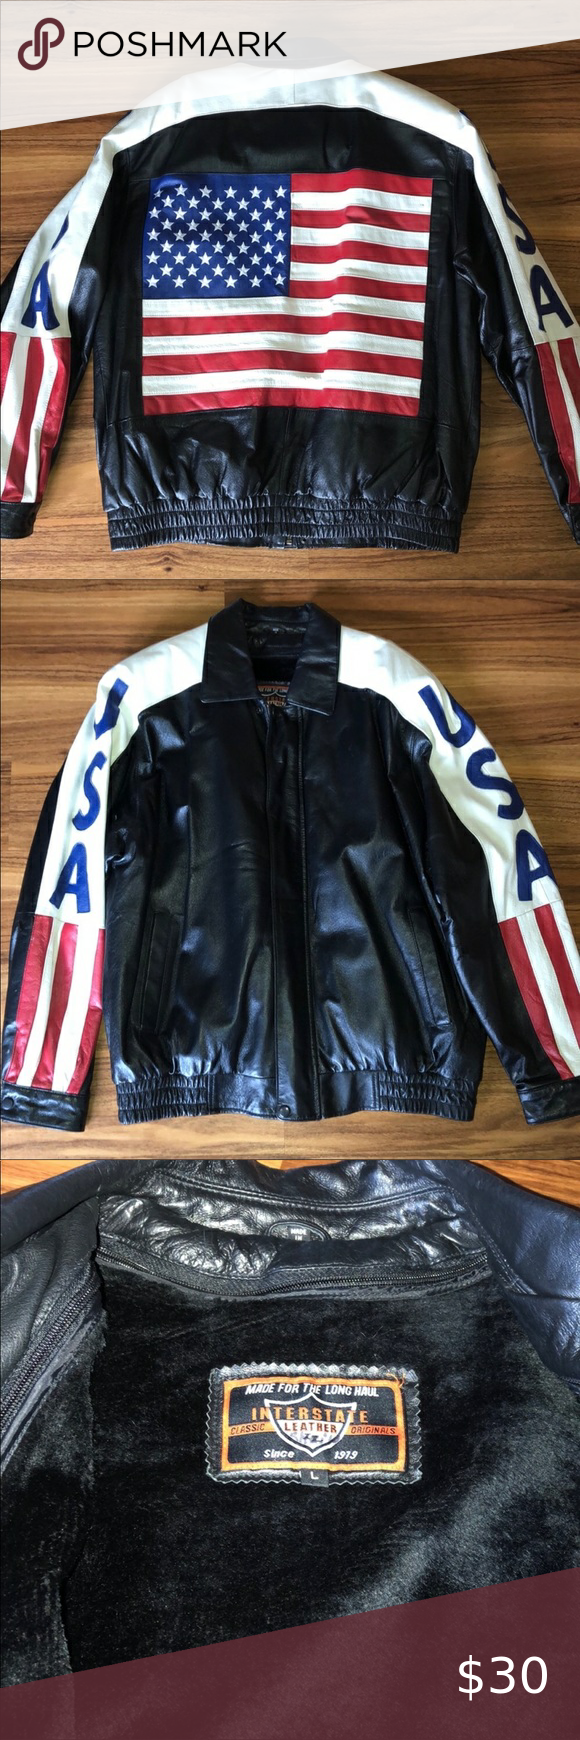 Interstate Leather Motorcycle Usa Jacket Jackets Genuine Leather Jackets Clothes Design [ 1740 x 580 Pixel ]